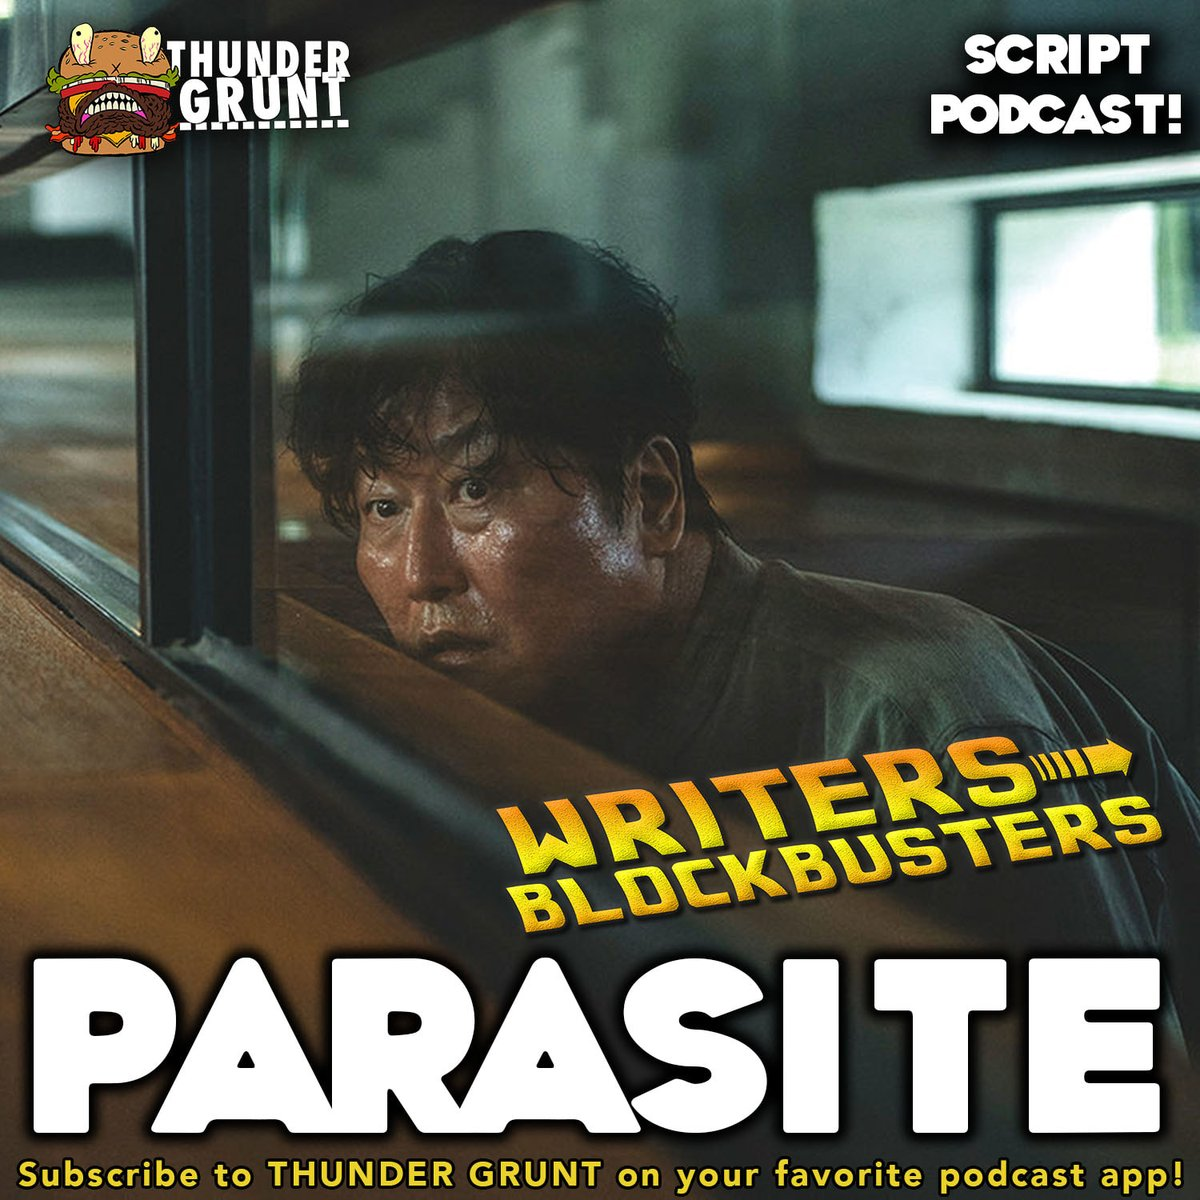 If you liked this mini-thread, check out our Parasite episode of Writers/Blockbusters where @Jamie_Nash @ThunderGruntBob and I discuss the #screenwriting techniques used in the film. thundergrunt.com/e/writersblock…